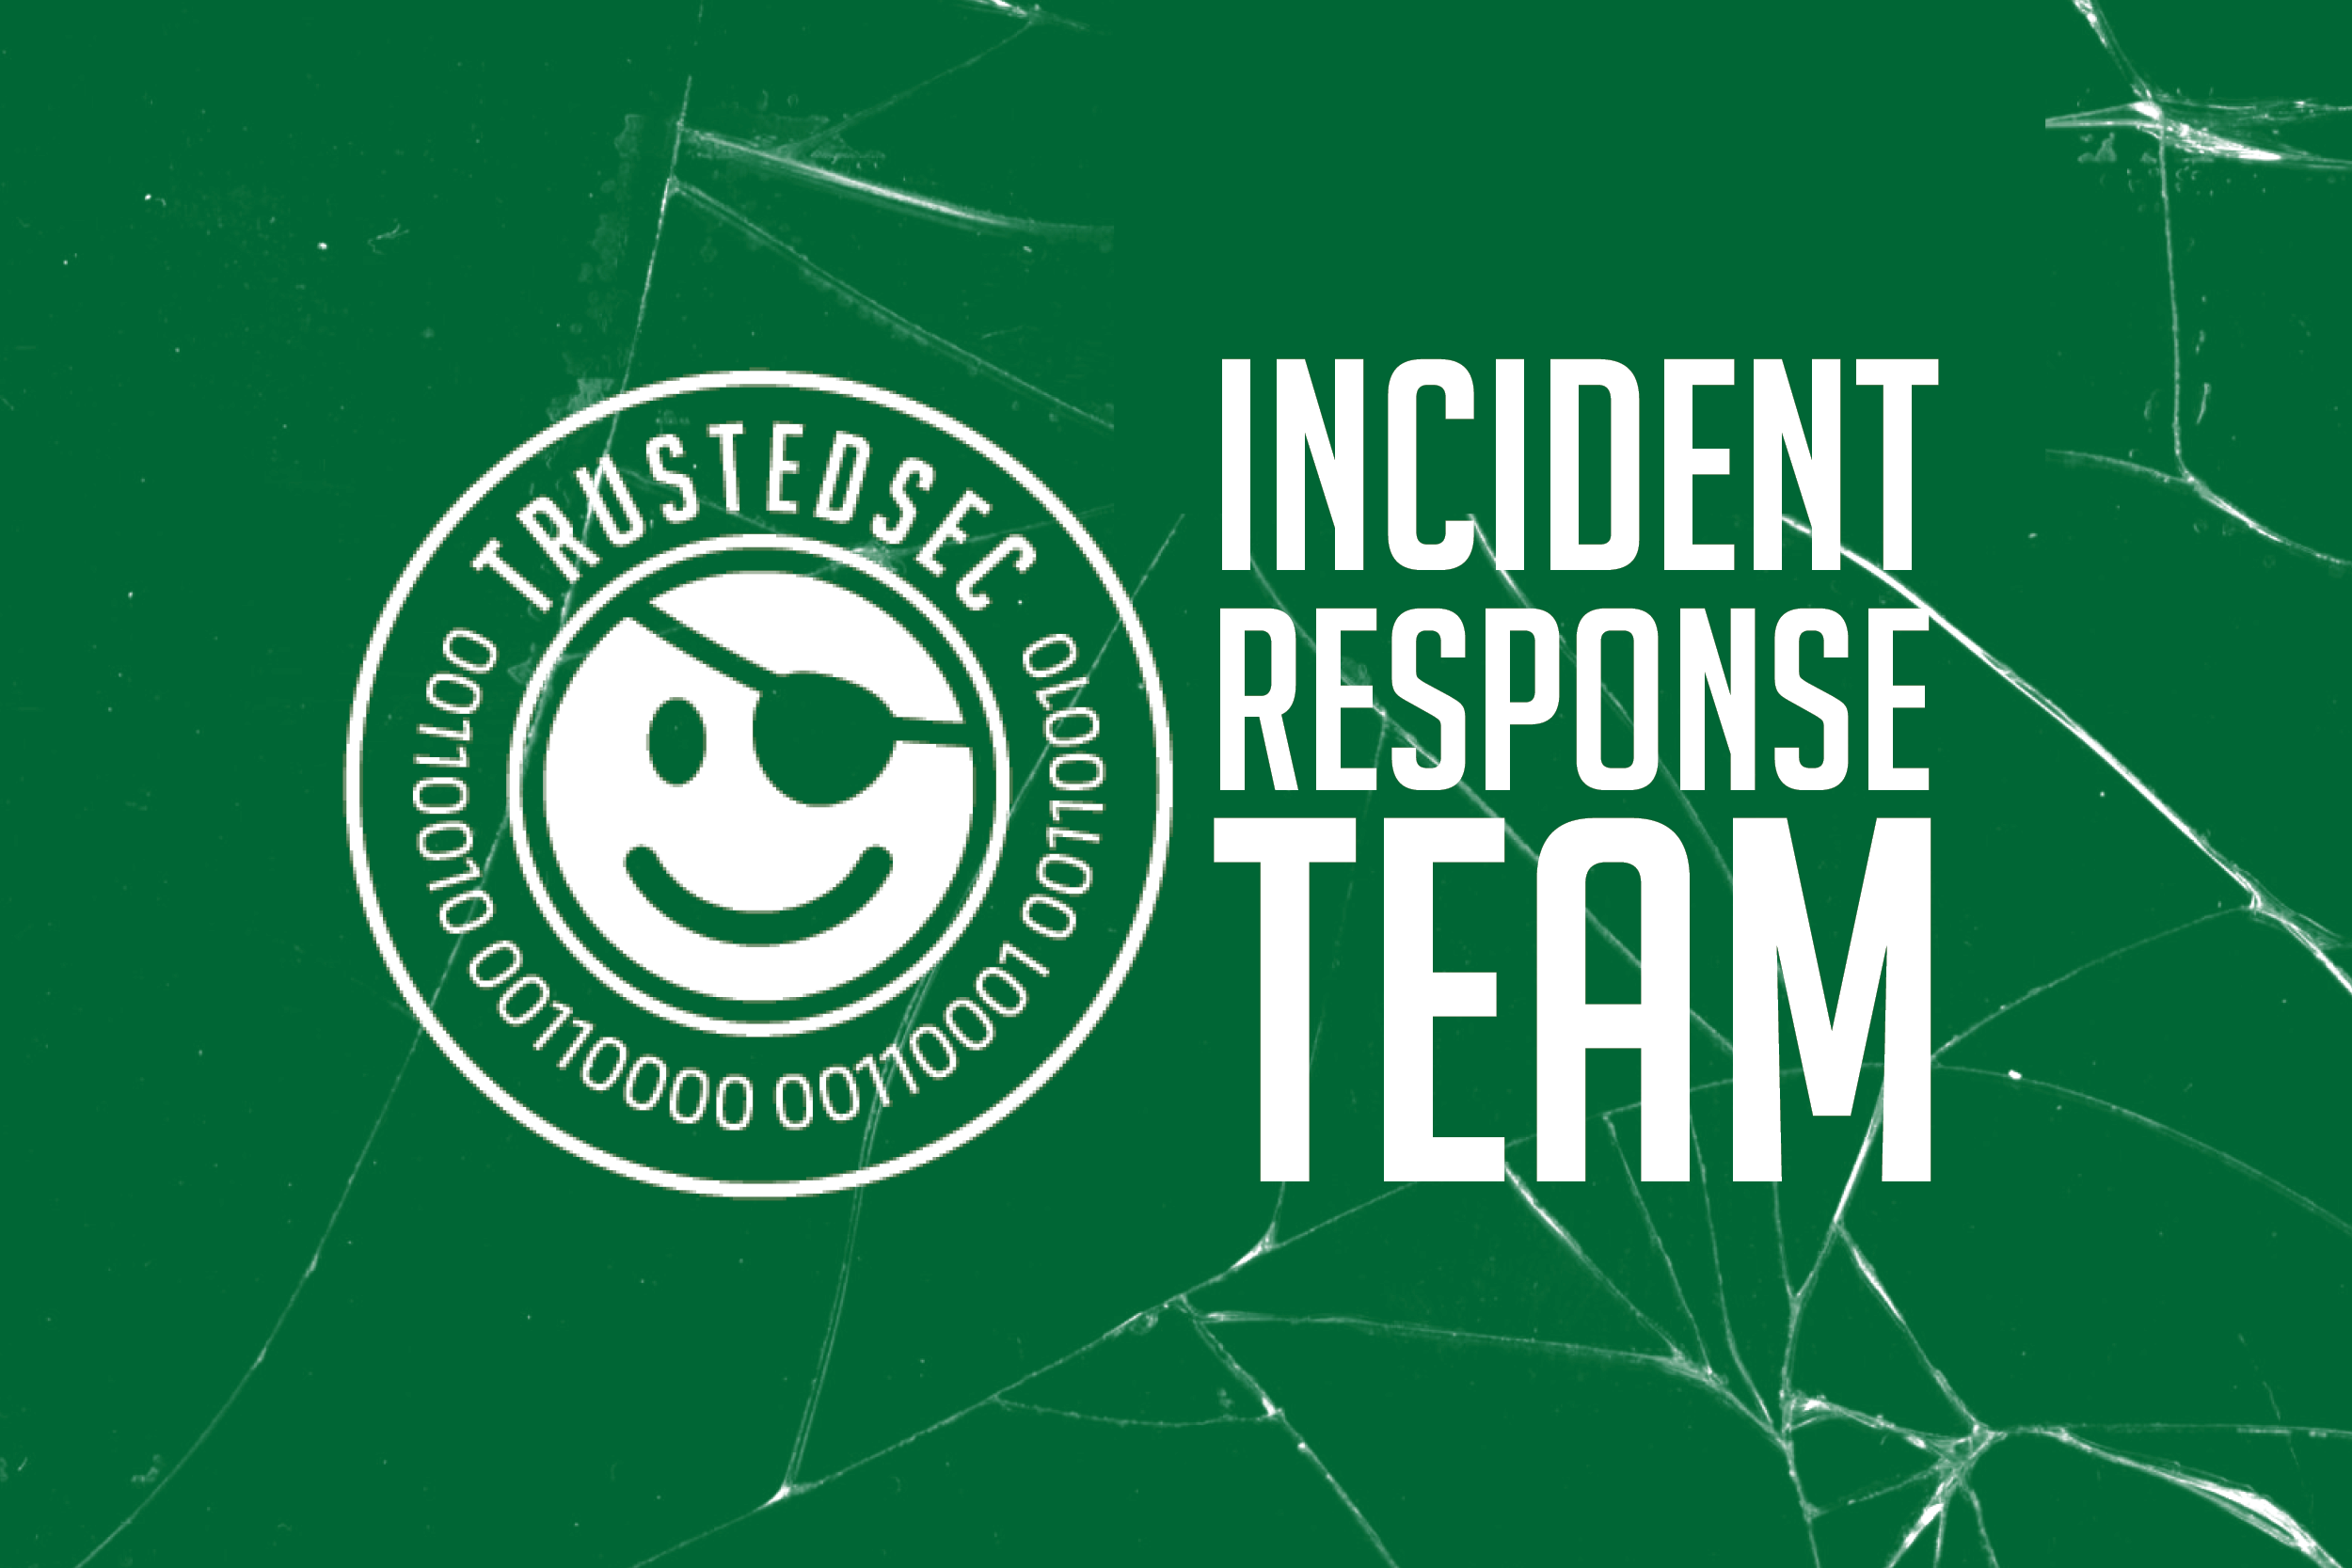 TrustedSec Incident Response Team graphic